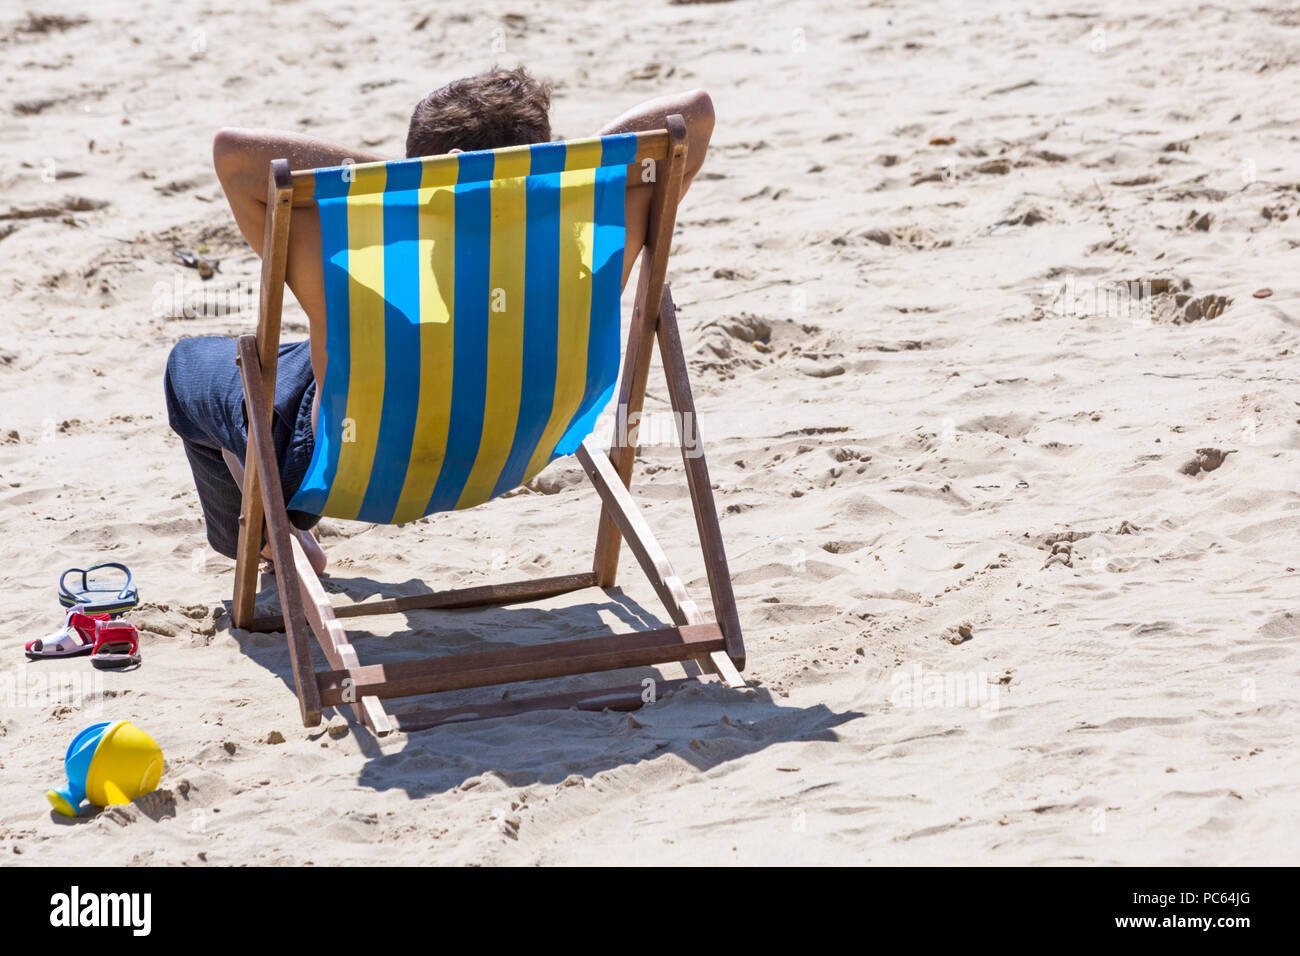 Bournemouth, Dorset, UK. 31st July 2018. UK weather:  the sun returns and temperatures rise as beach-goers head to the seaside to enjoy the warm sunny weather. man relaxing in deckchair on the beach. Credit: Carolyn Jenkins/Alamy Live News - Stock Image